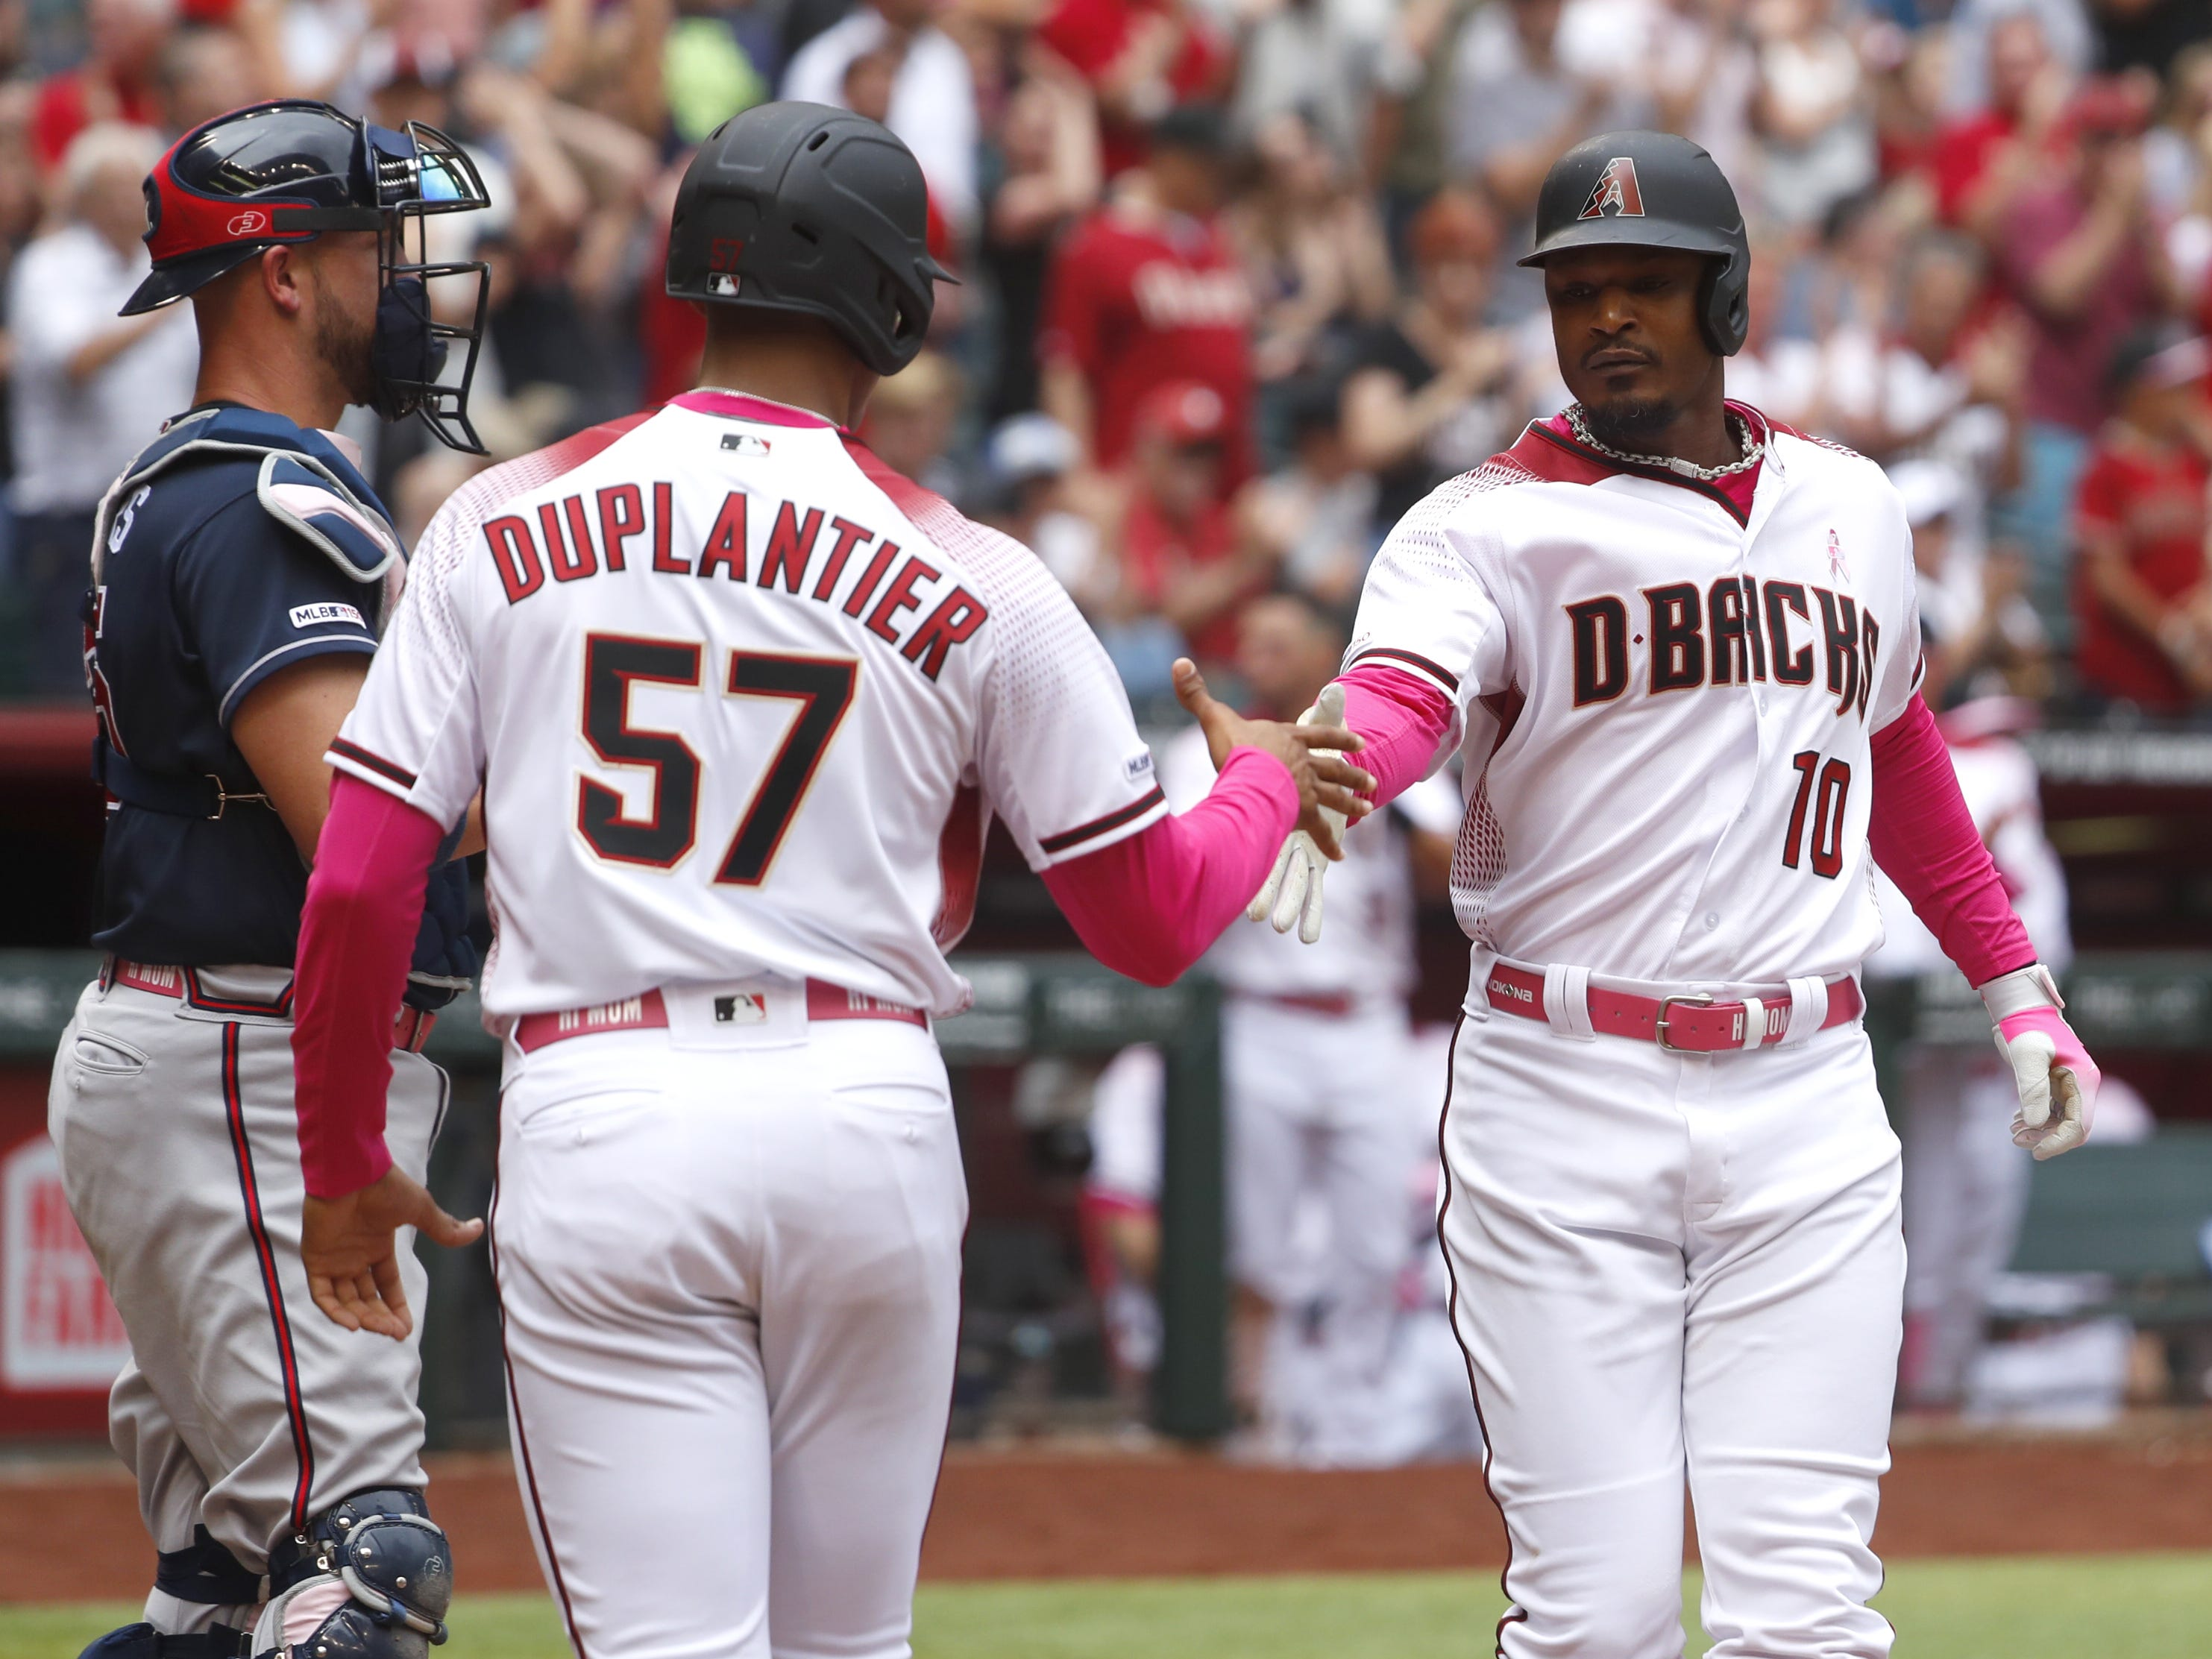 Diamondbacks' Adam Jones (10) celebrates his two-run homer with Jon Duplantier (57) during the fourth inning against the Braves at Chase Field in Phoenix, Ariz. on May 12, 2019.